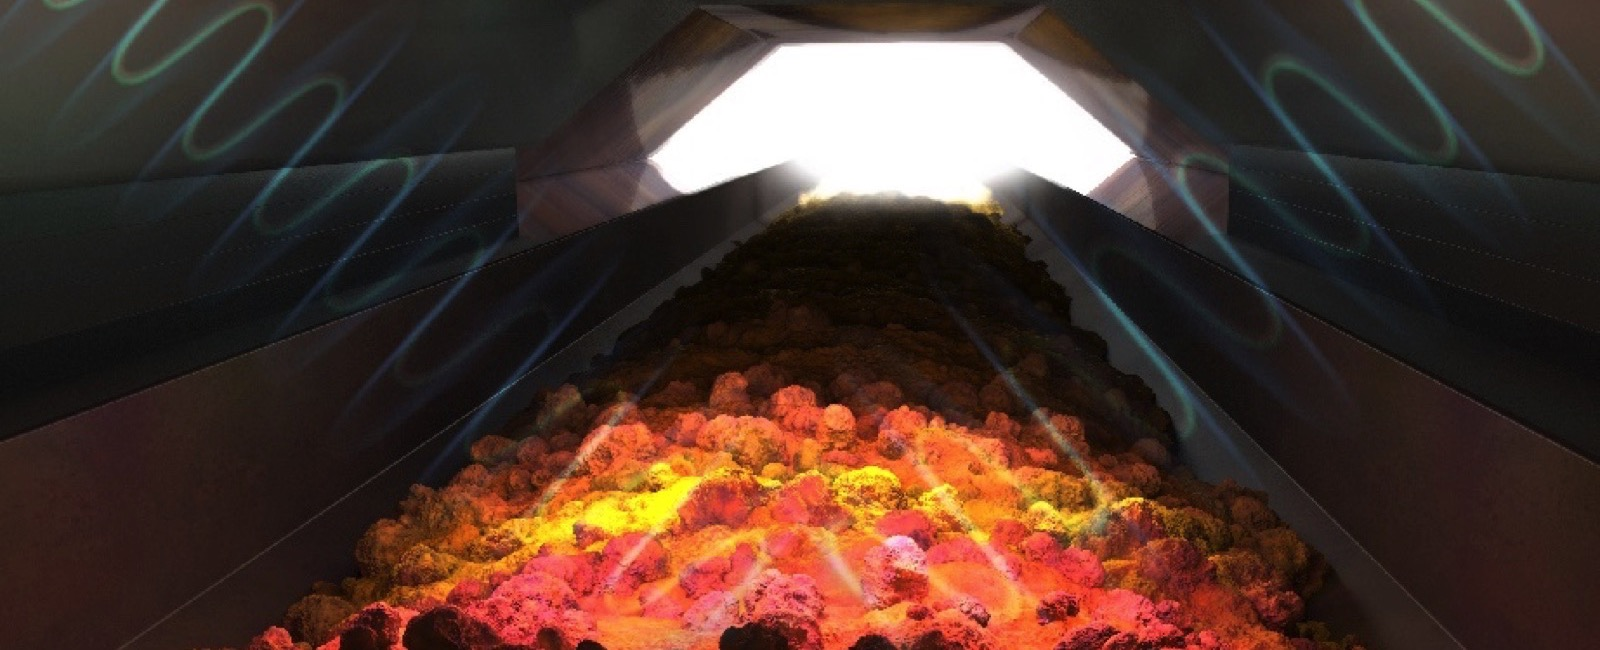 NextOre: Sorting Ore from Waste on a Conveyor using Magnetic Resonance Technology